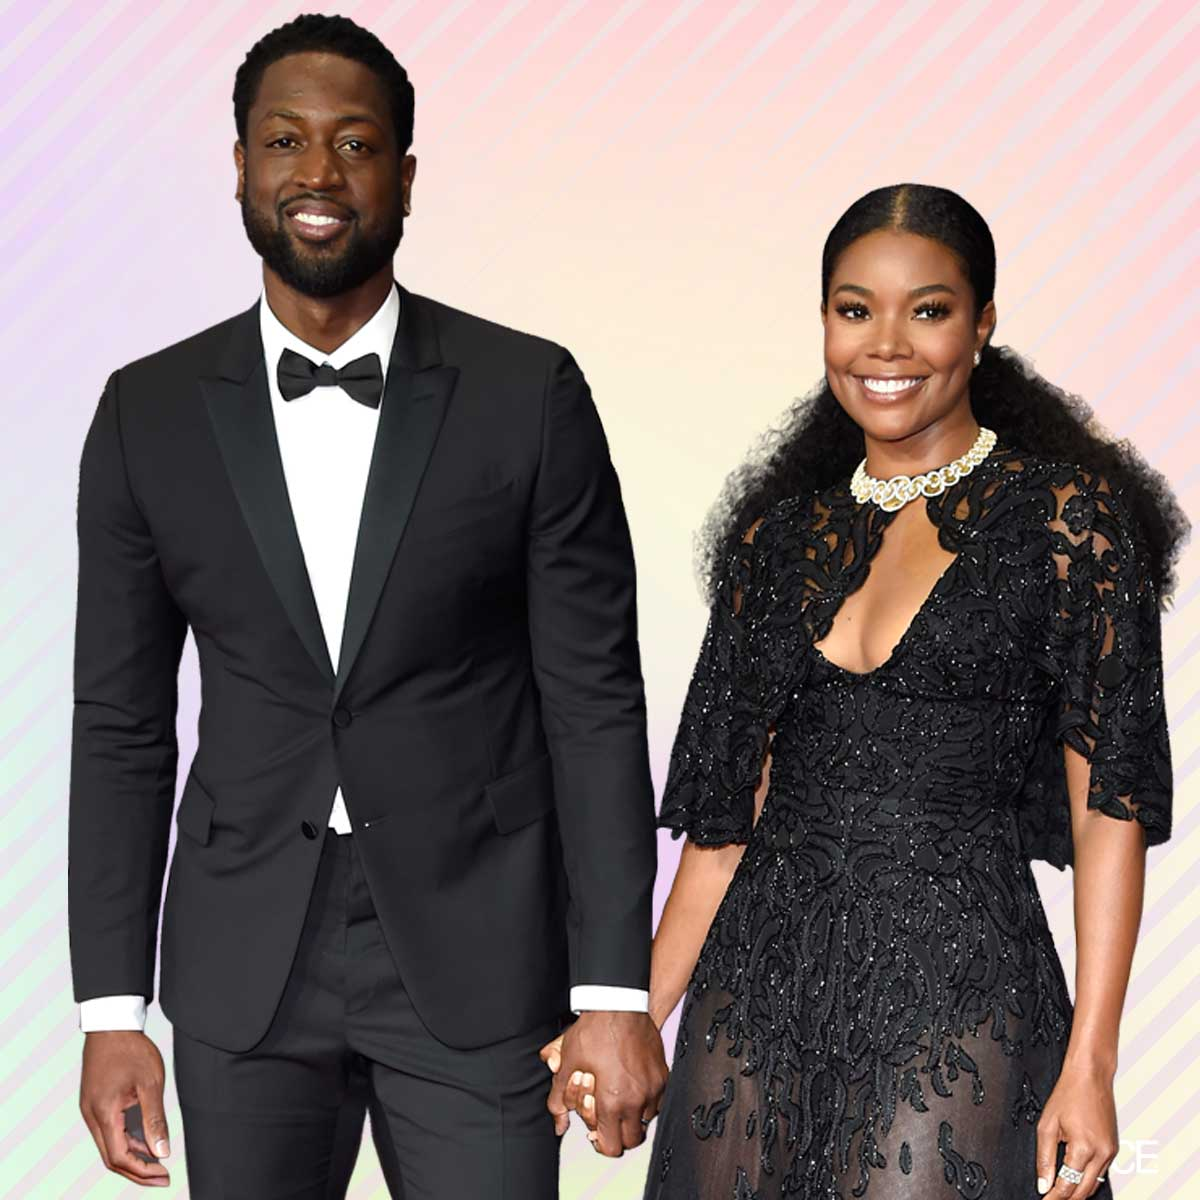 Patti LaBelle Gave Gabrielle Union Relationship Advice On Dwyane Wade